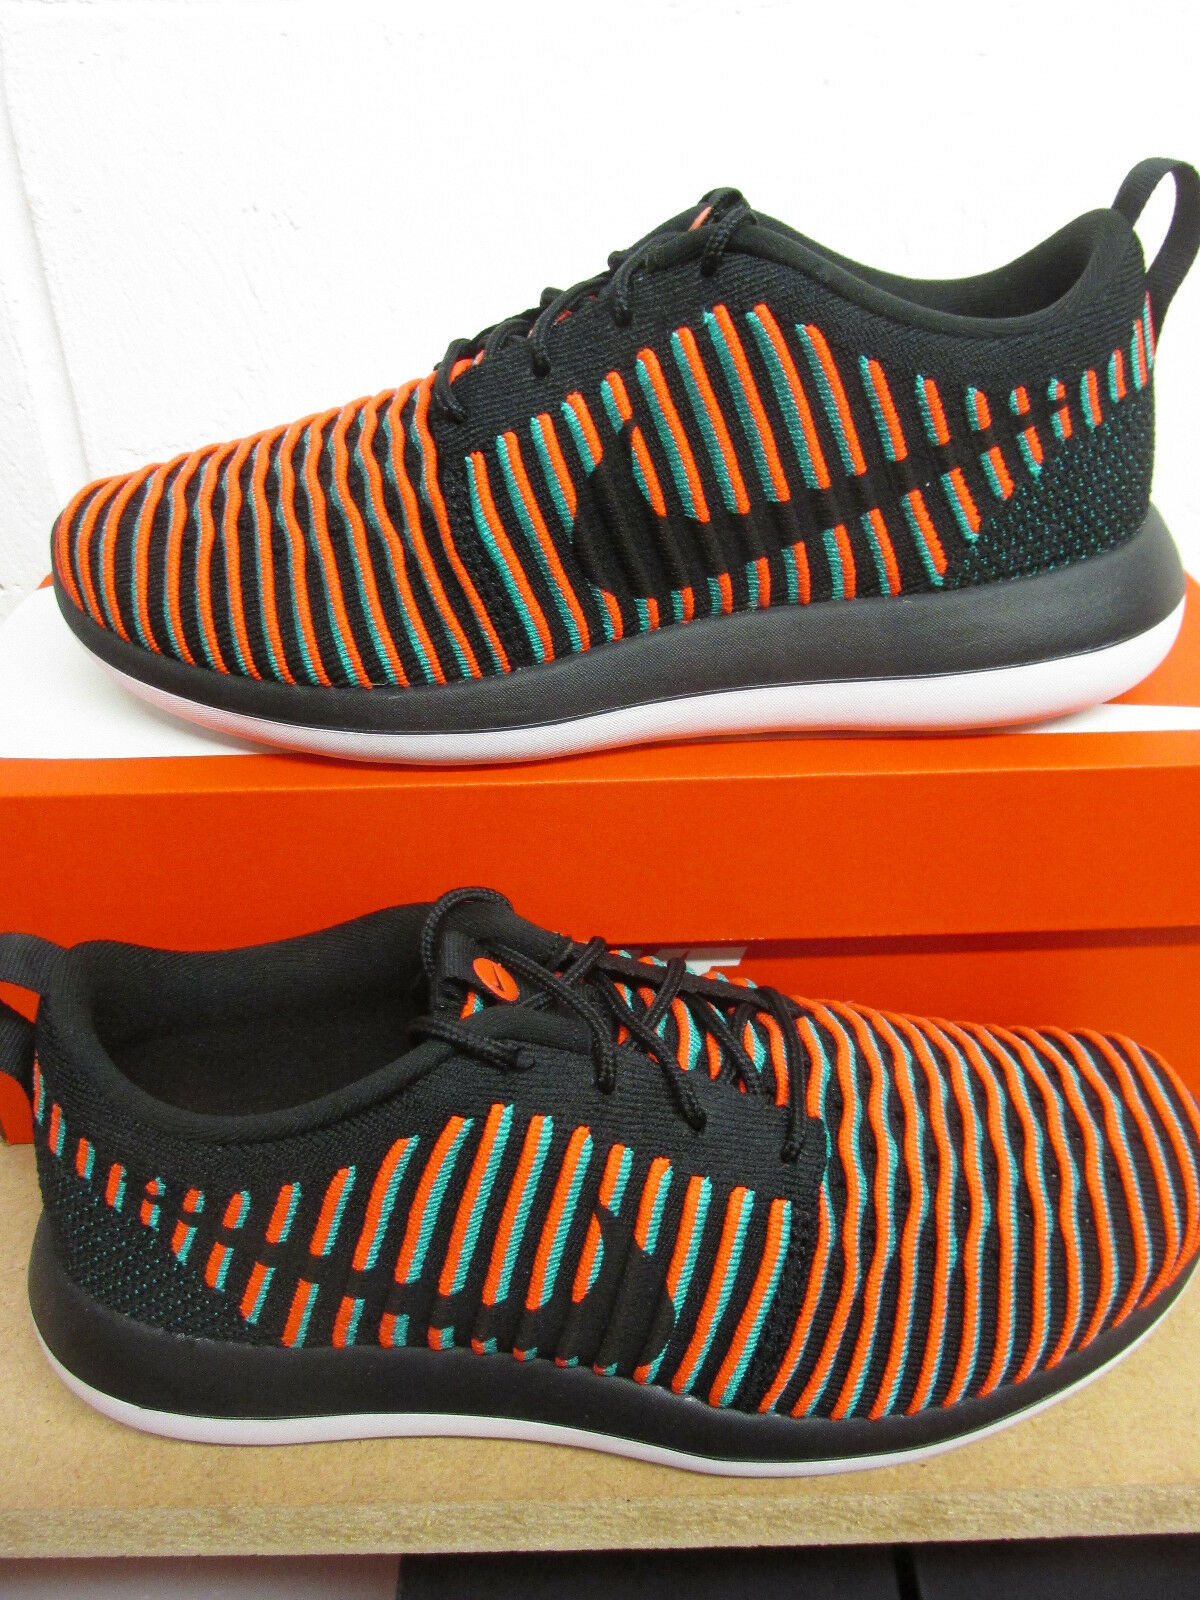 29dadc54ddb Nike Roshe Two Two Two Flyknit Mens Running Trainers 844833 003 Sneakers  Shoes 6e8962